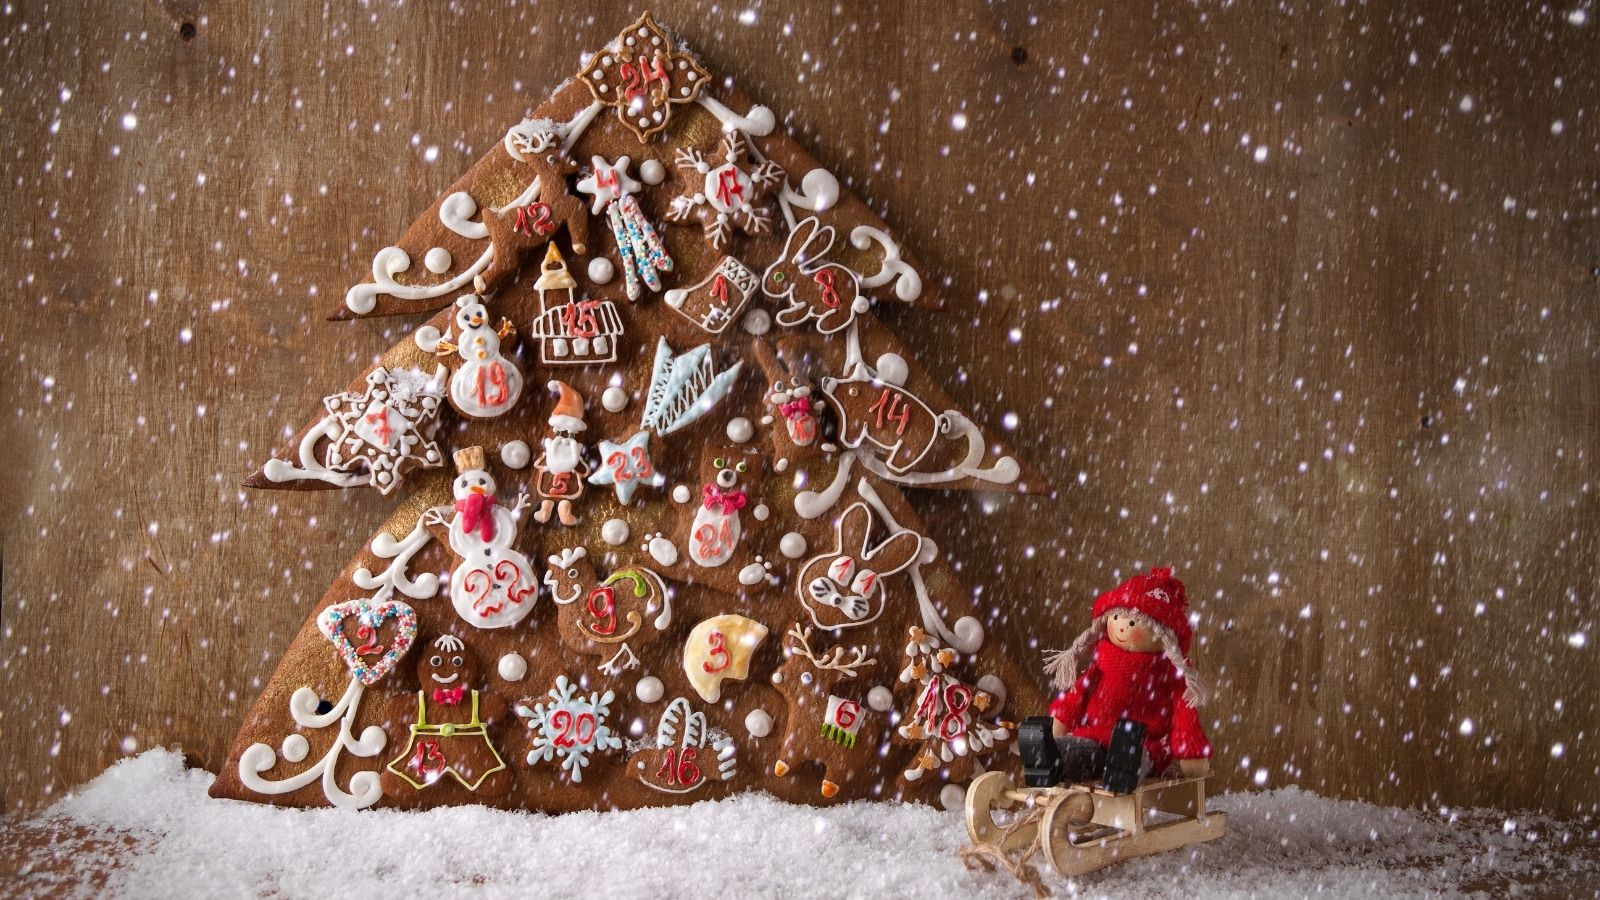 Homemade Advent Calendar Cover Image - Gingerbread Advent Calendar with toy sleigh in front